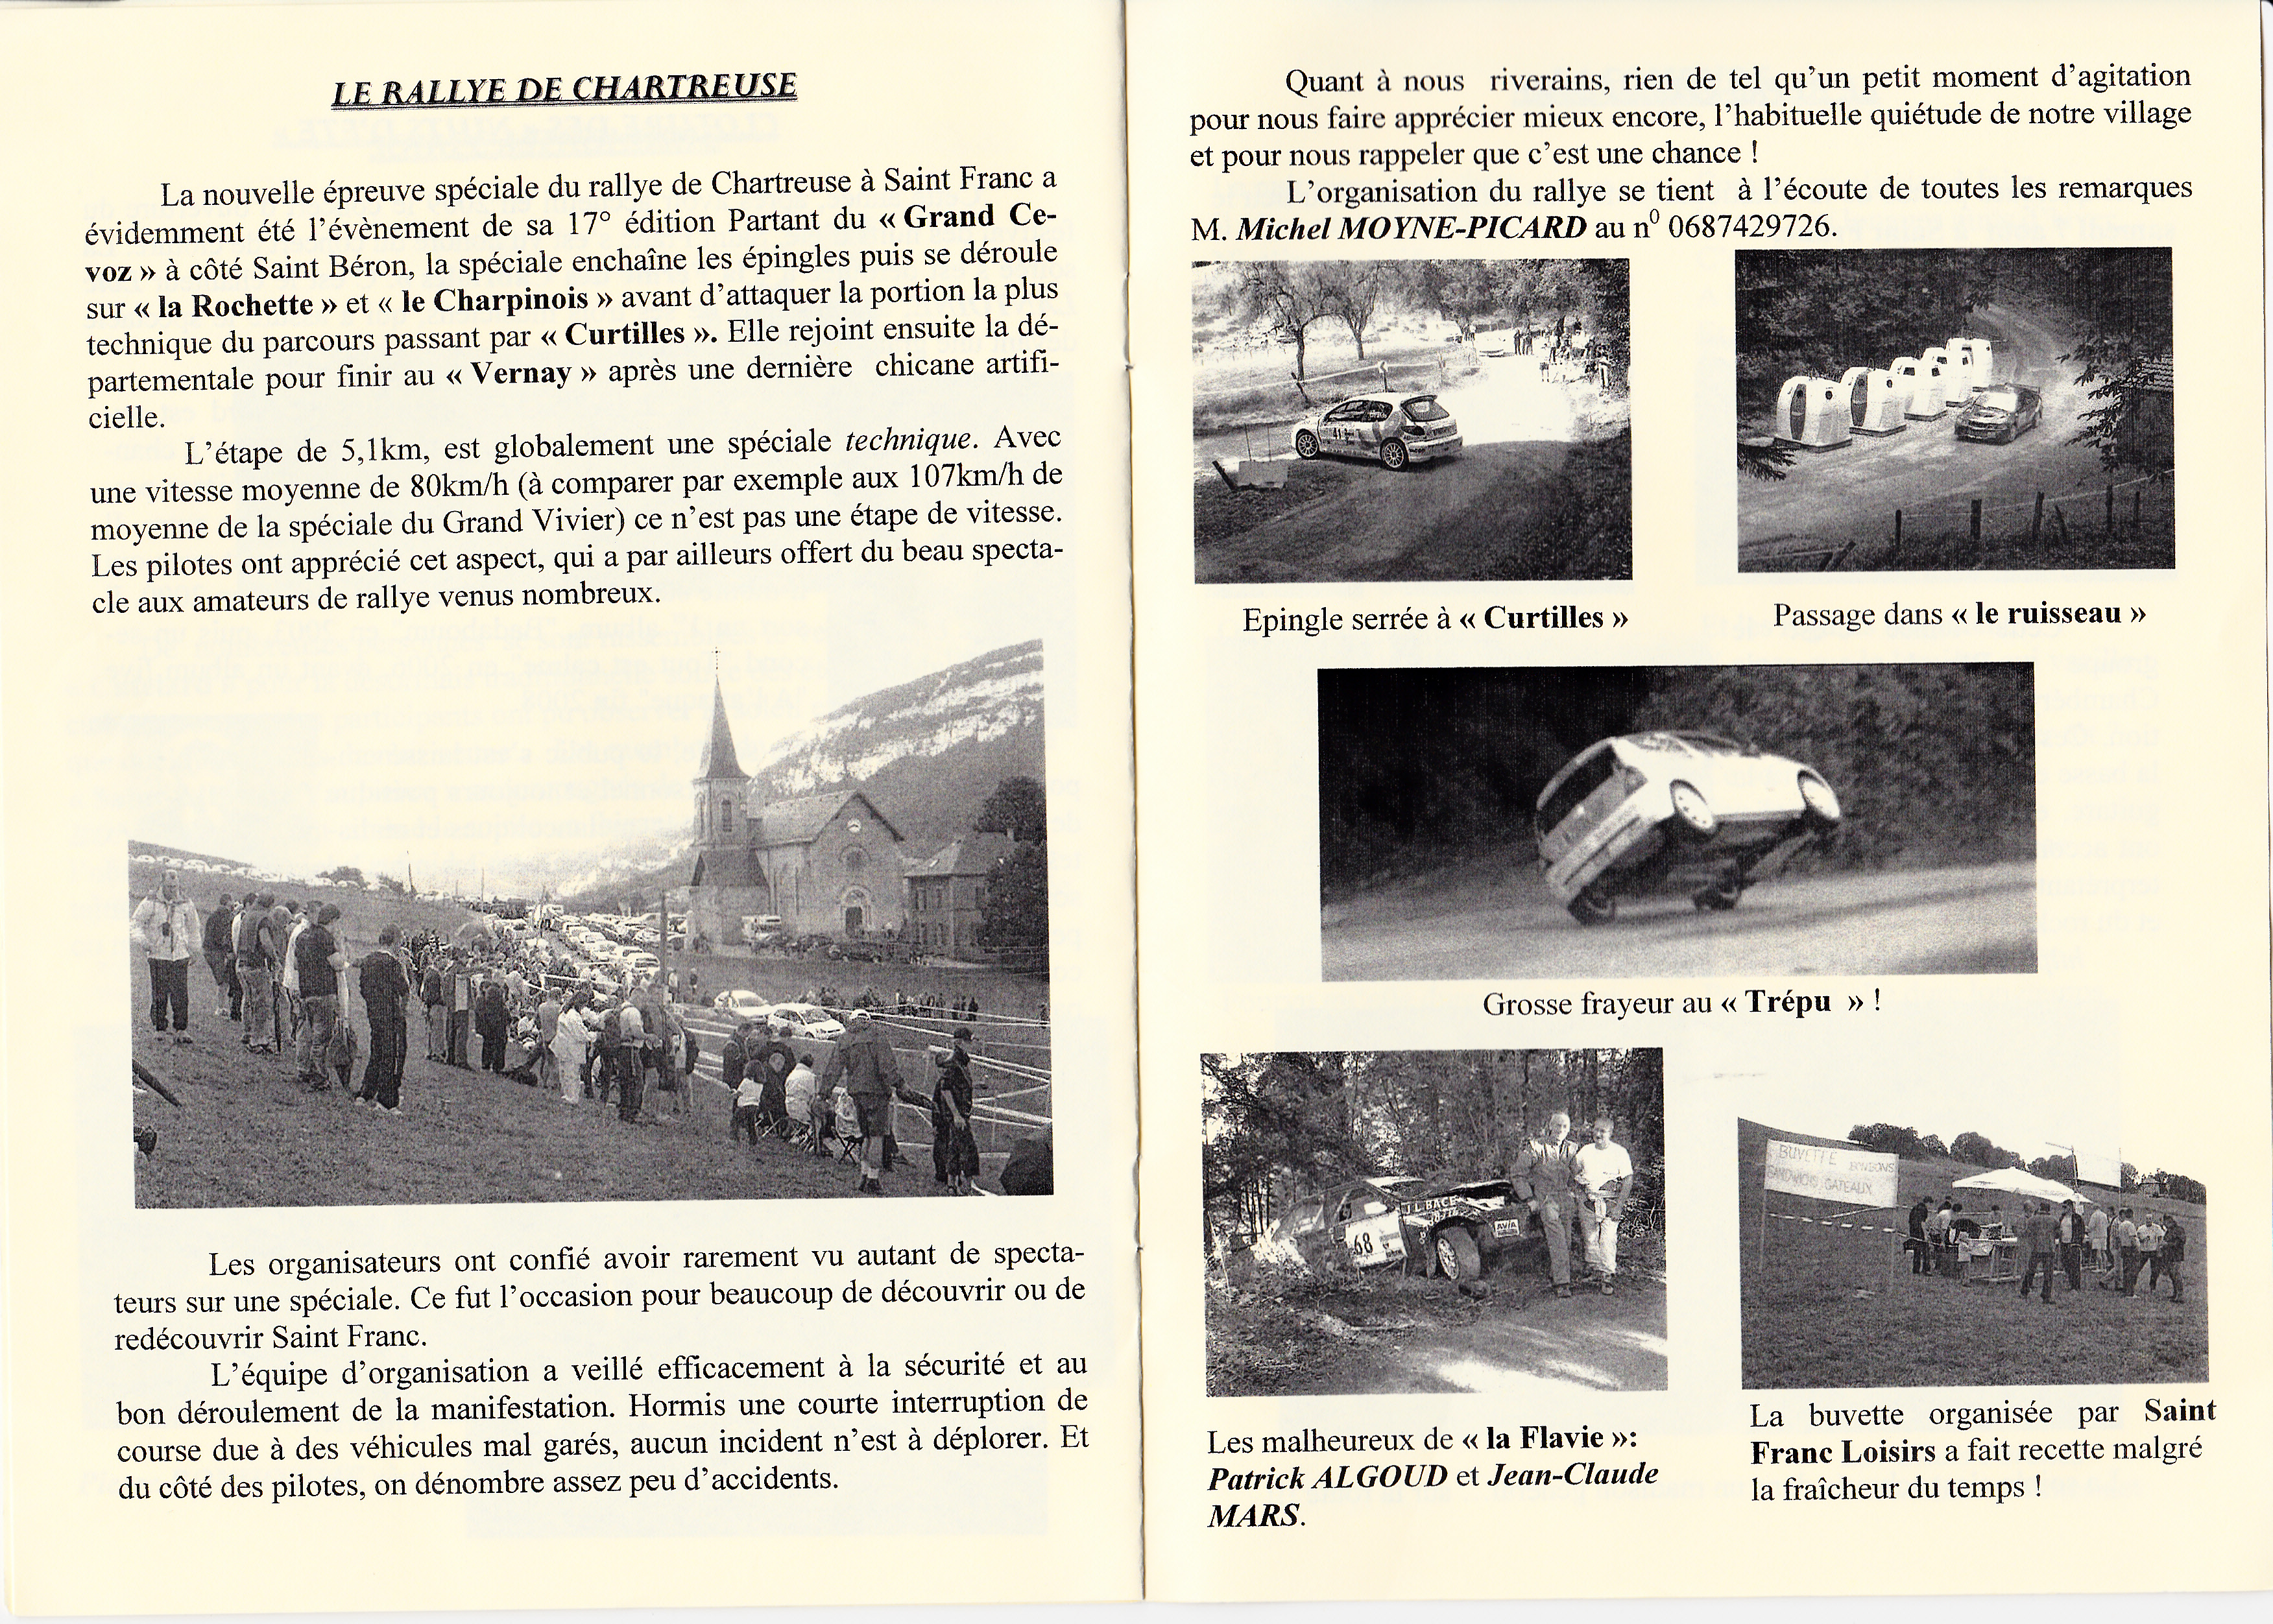 LPS n° 7 - Pages 12 & 13